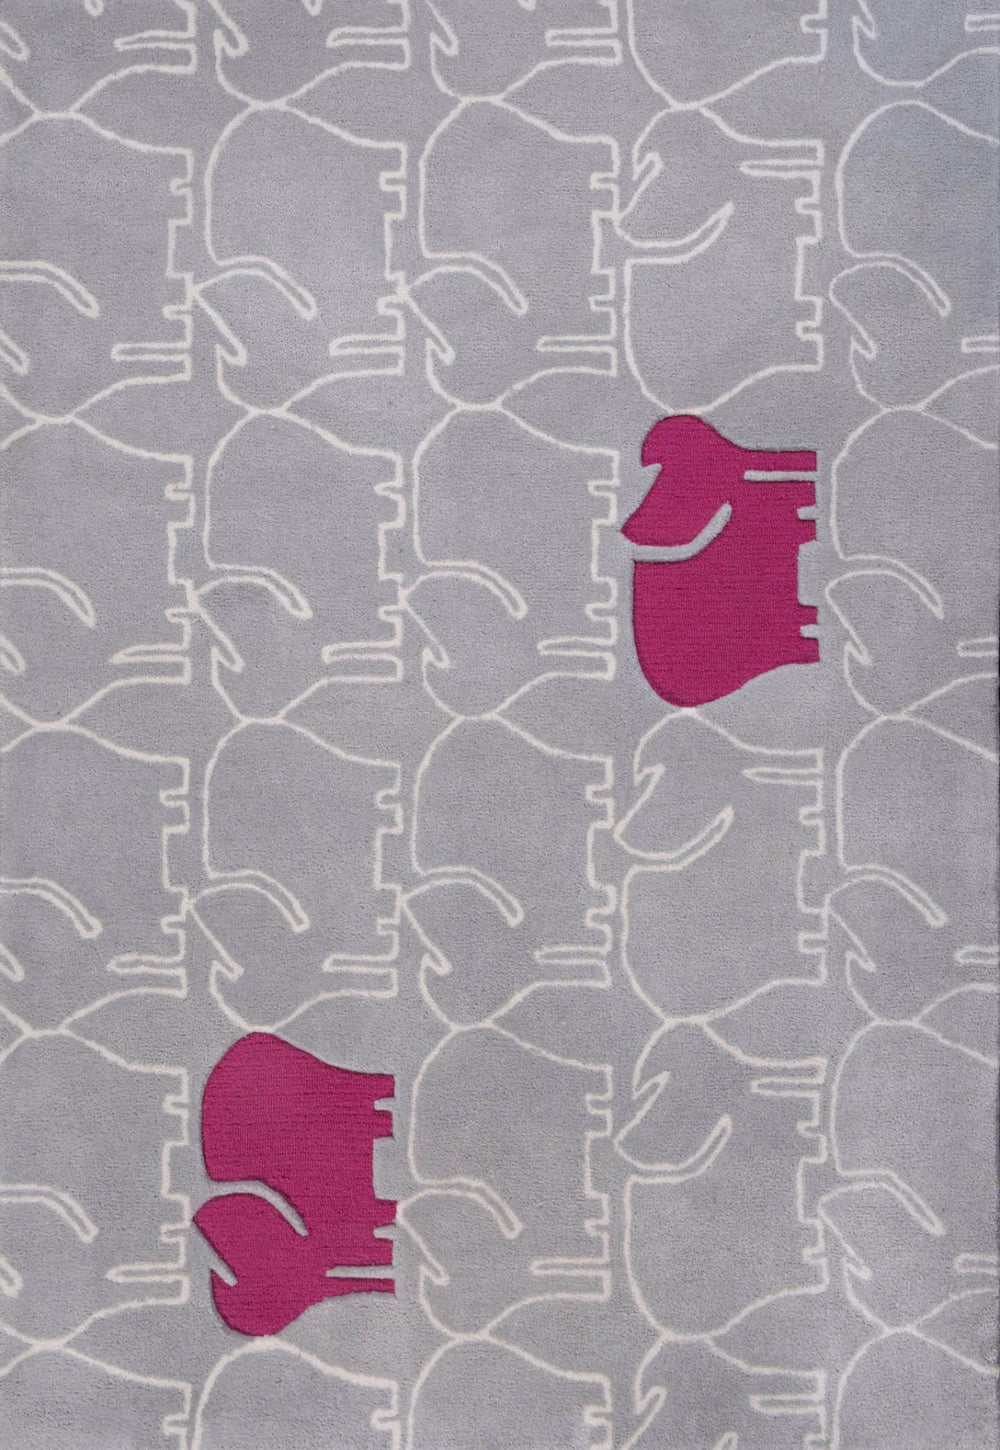 2780 Designer Children's Rugs - Rug Perfection